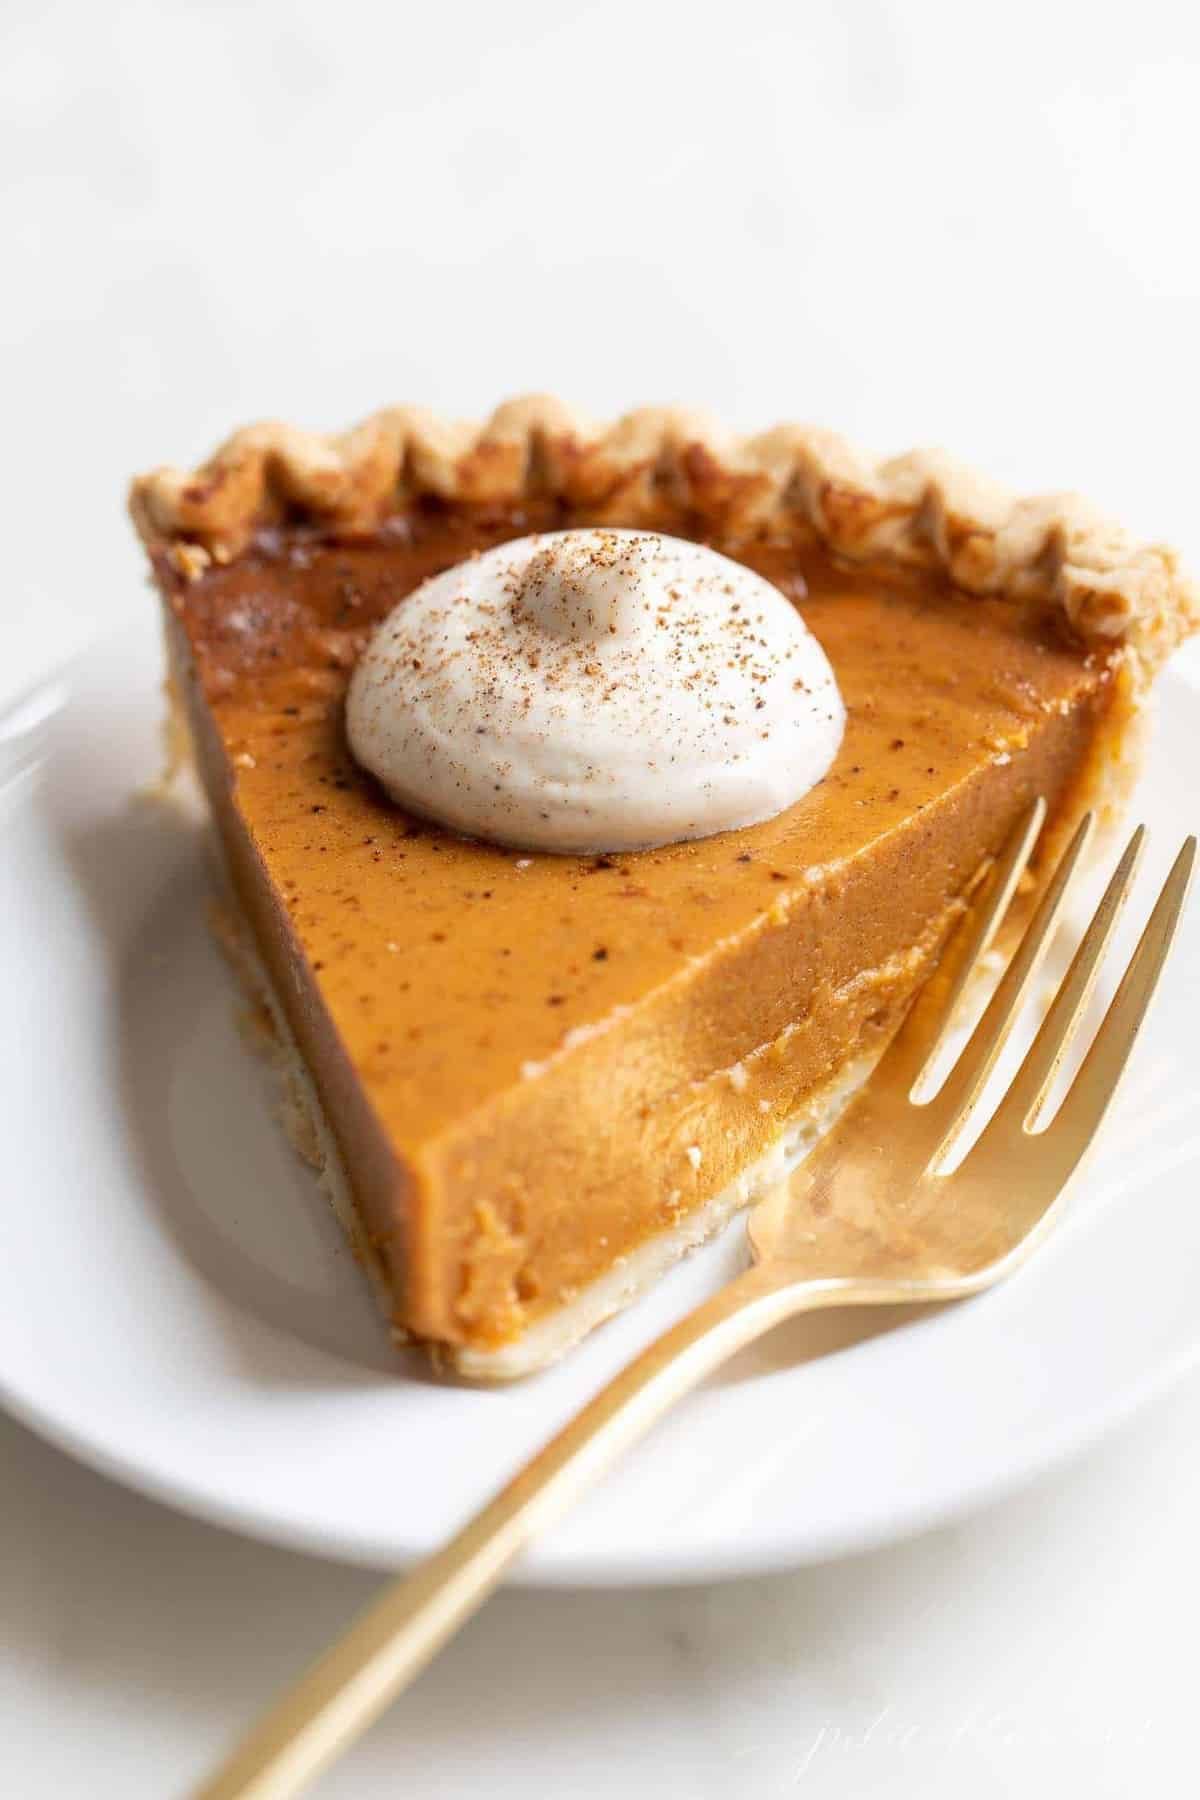 A slice of pumpkin pie with a dollop of spiced whipped cream, placed on a white plate, gold fork to the side.